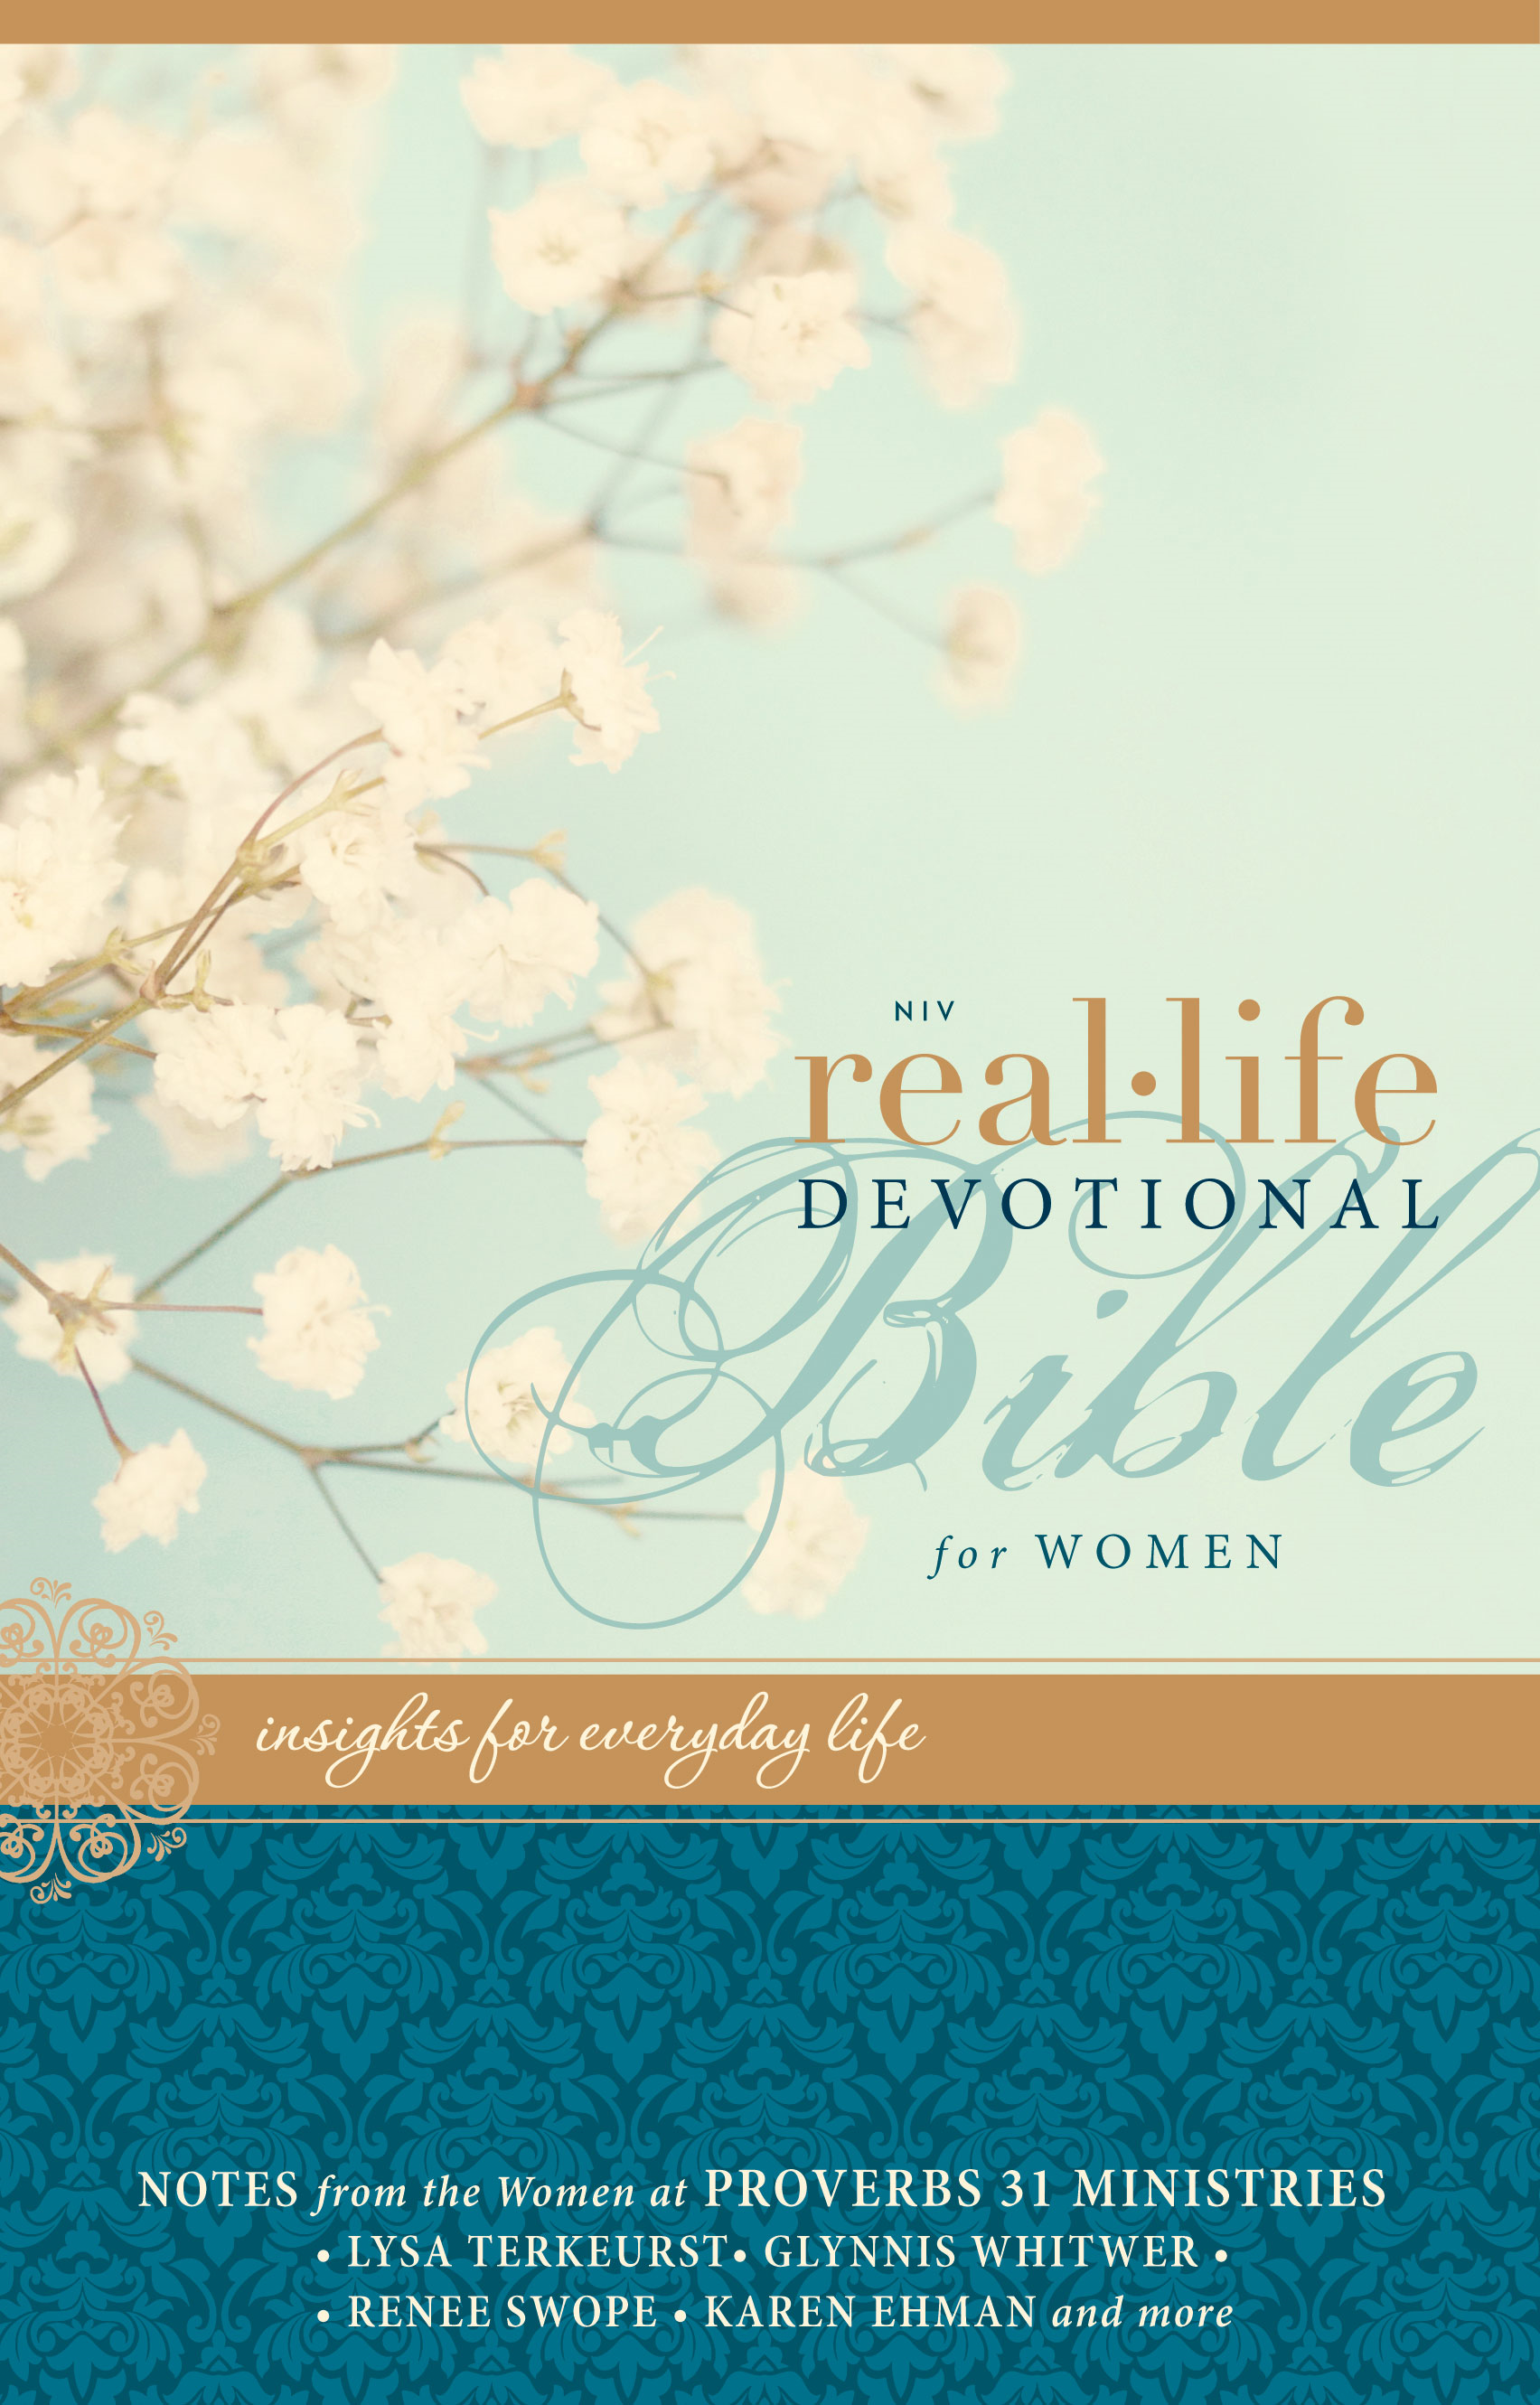 NIV Real-Life Devotional Bible for Women